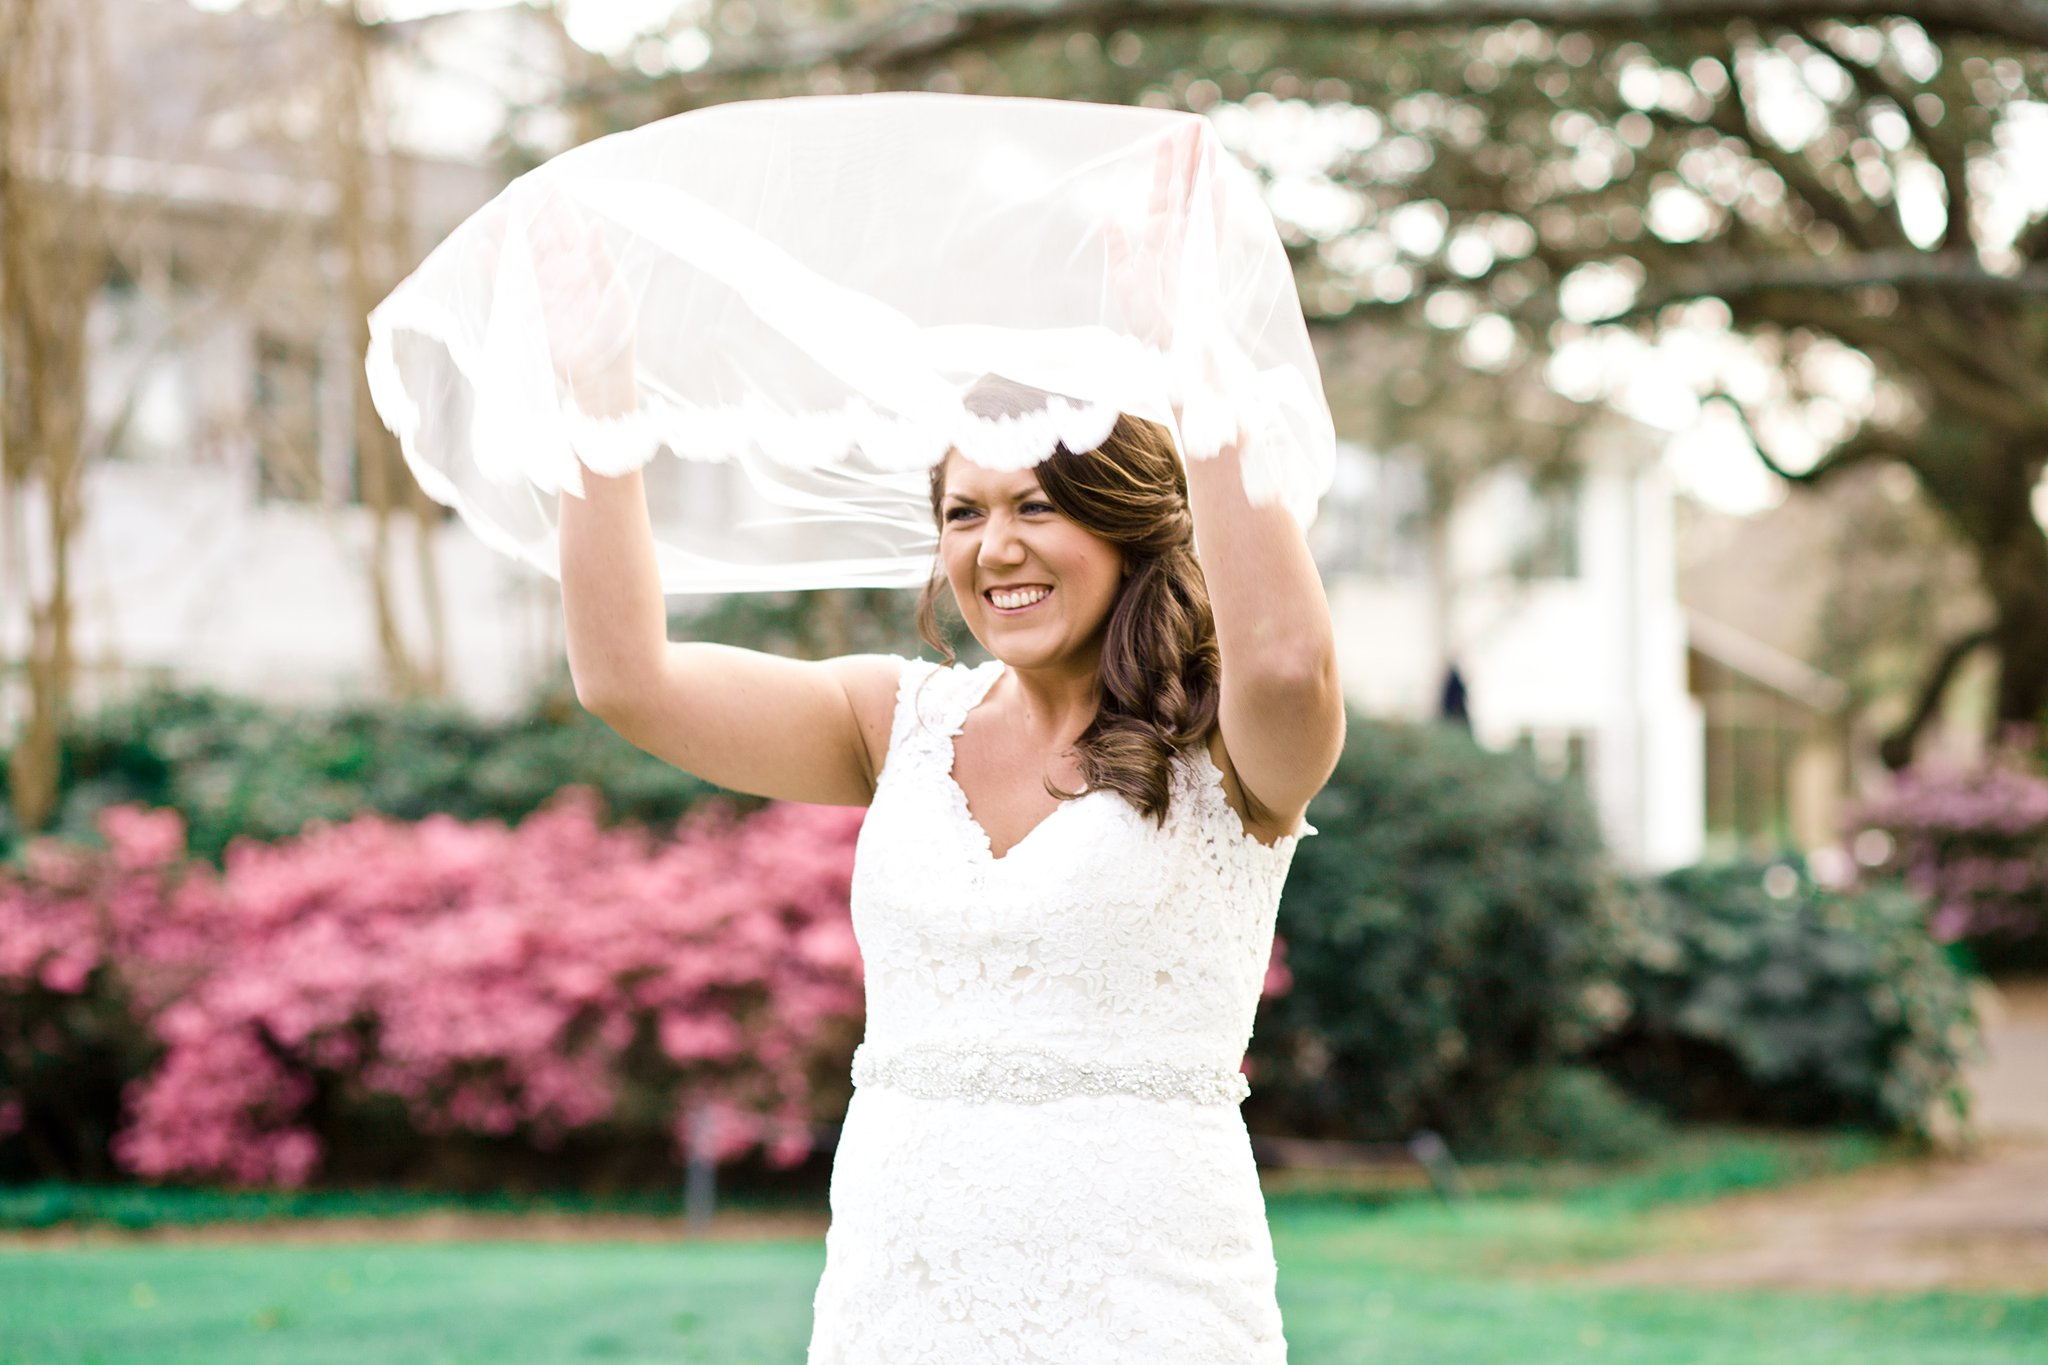 litchfield-golf-country-club-bridal-session-pawleys-island-sc-photos_0130.jpg